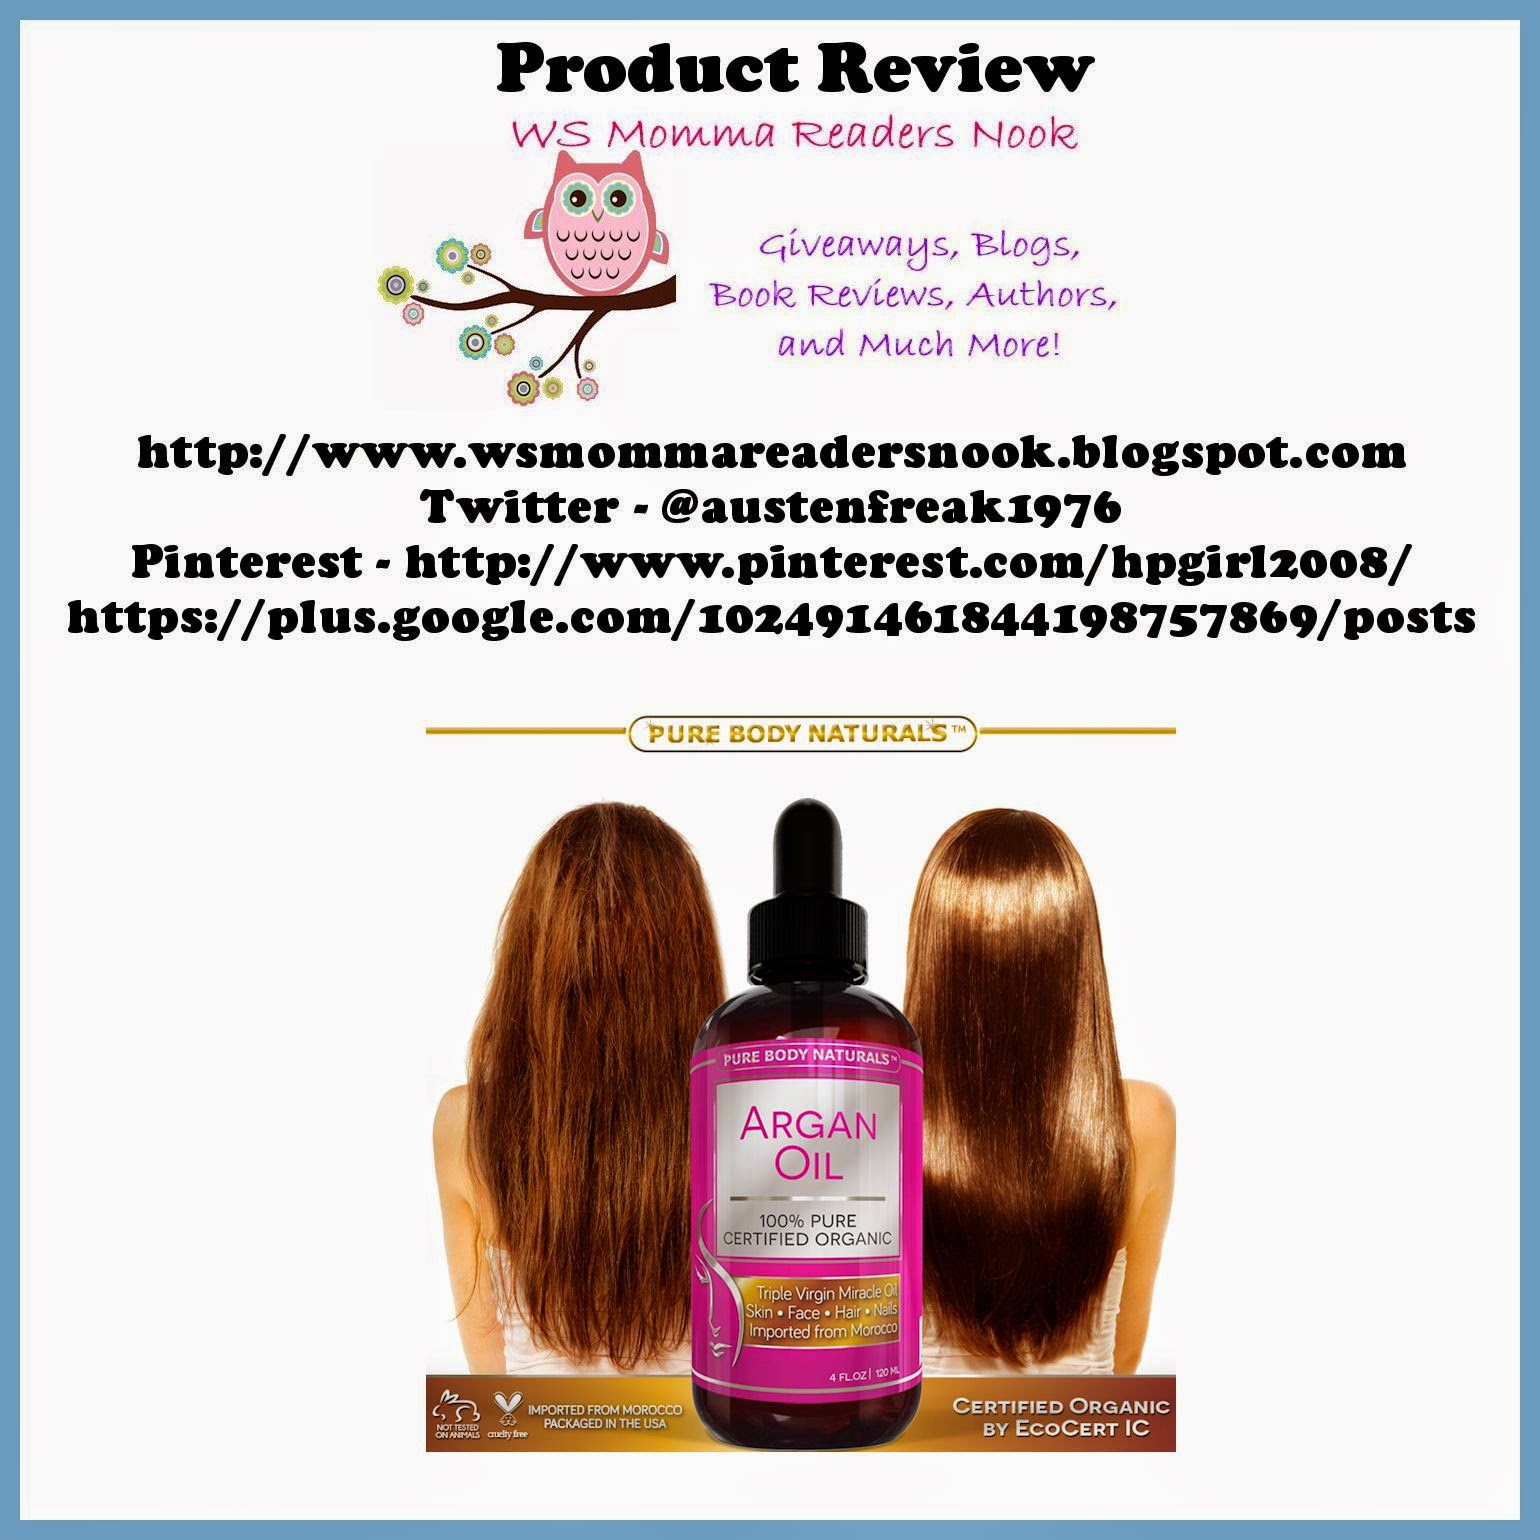 http://www.amazon.com/best-organic-argan-hair-nails/dp/b00or0ue00